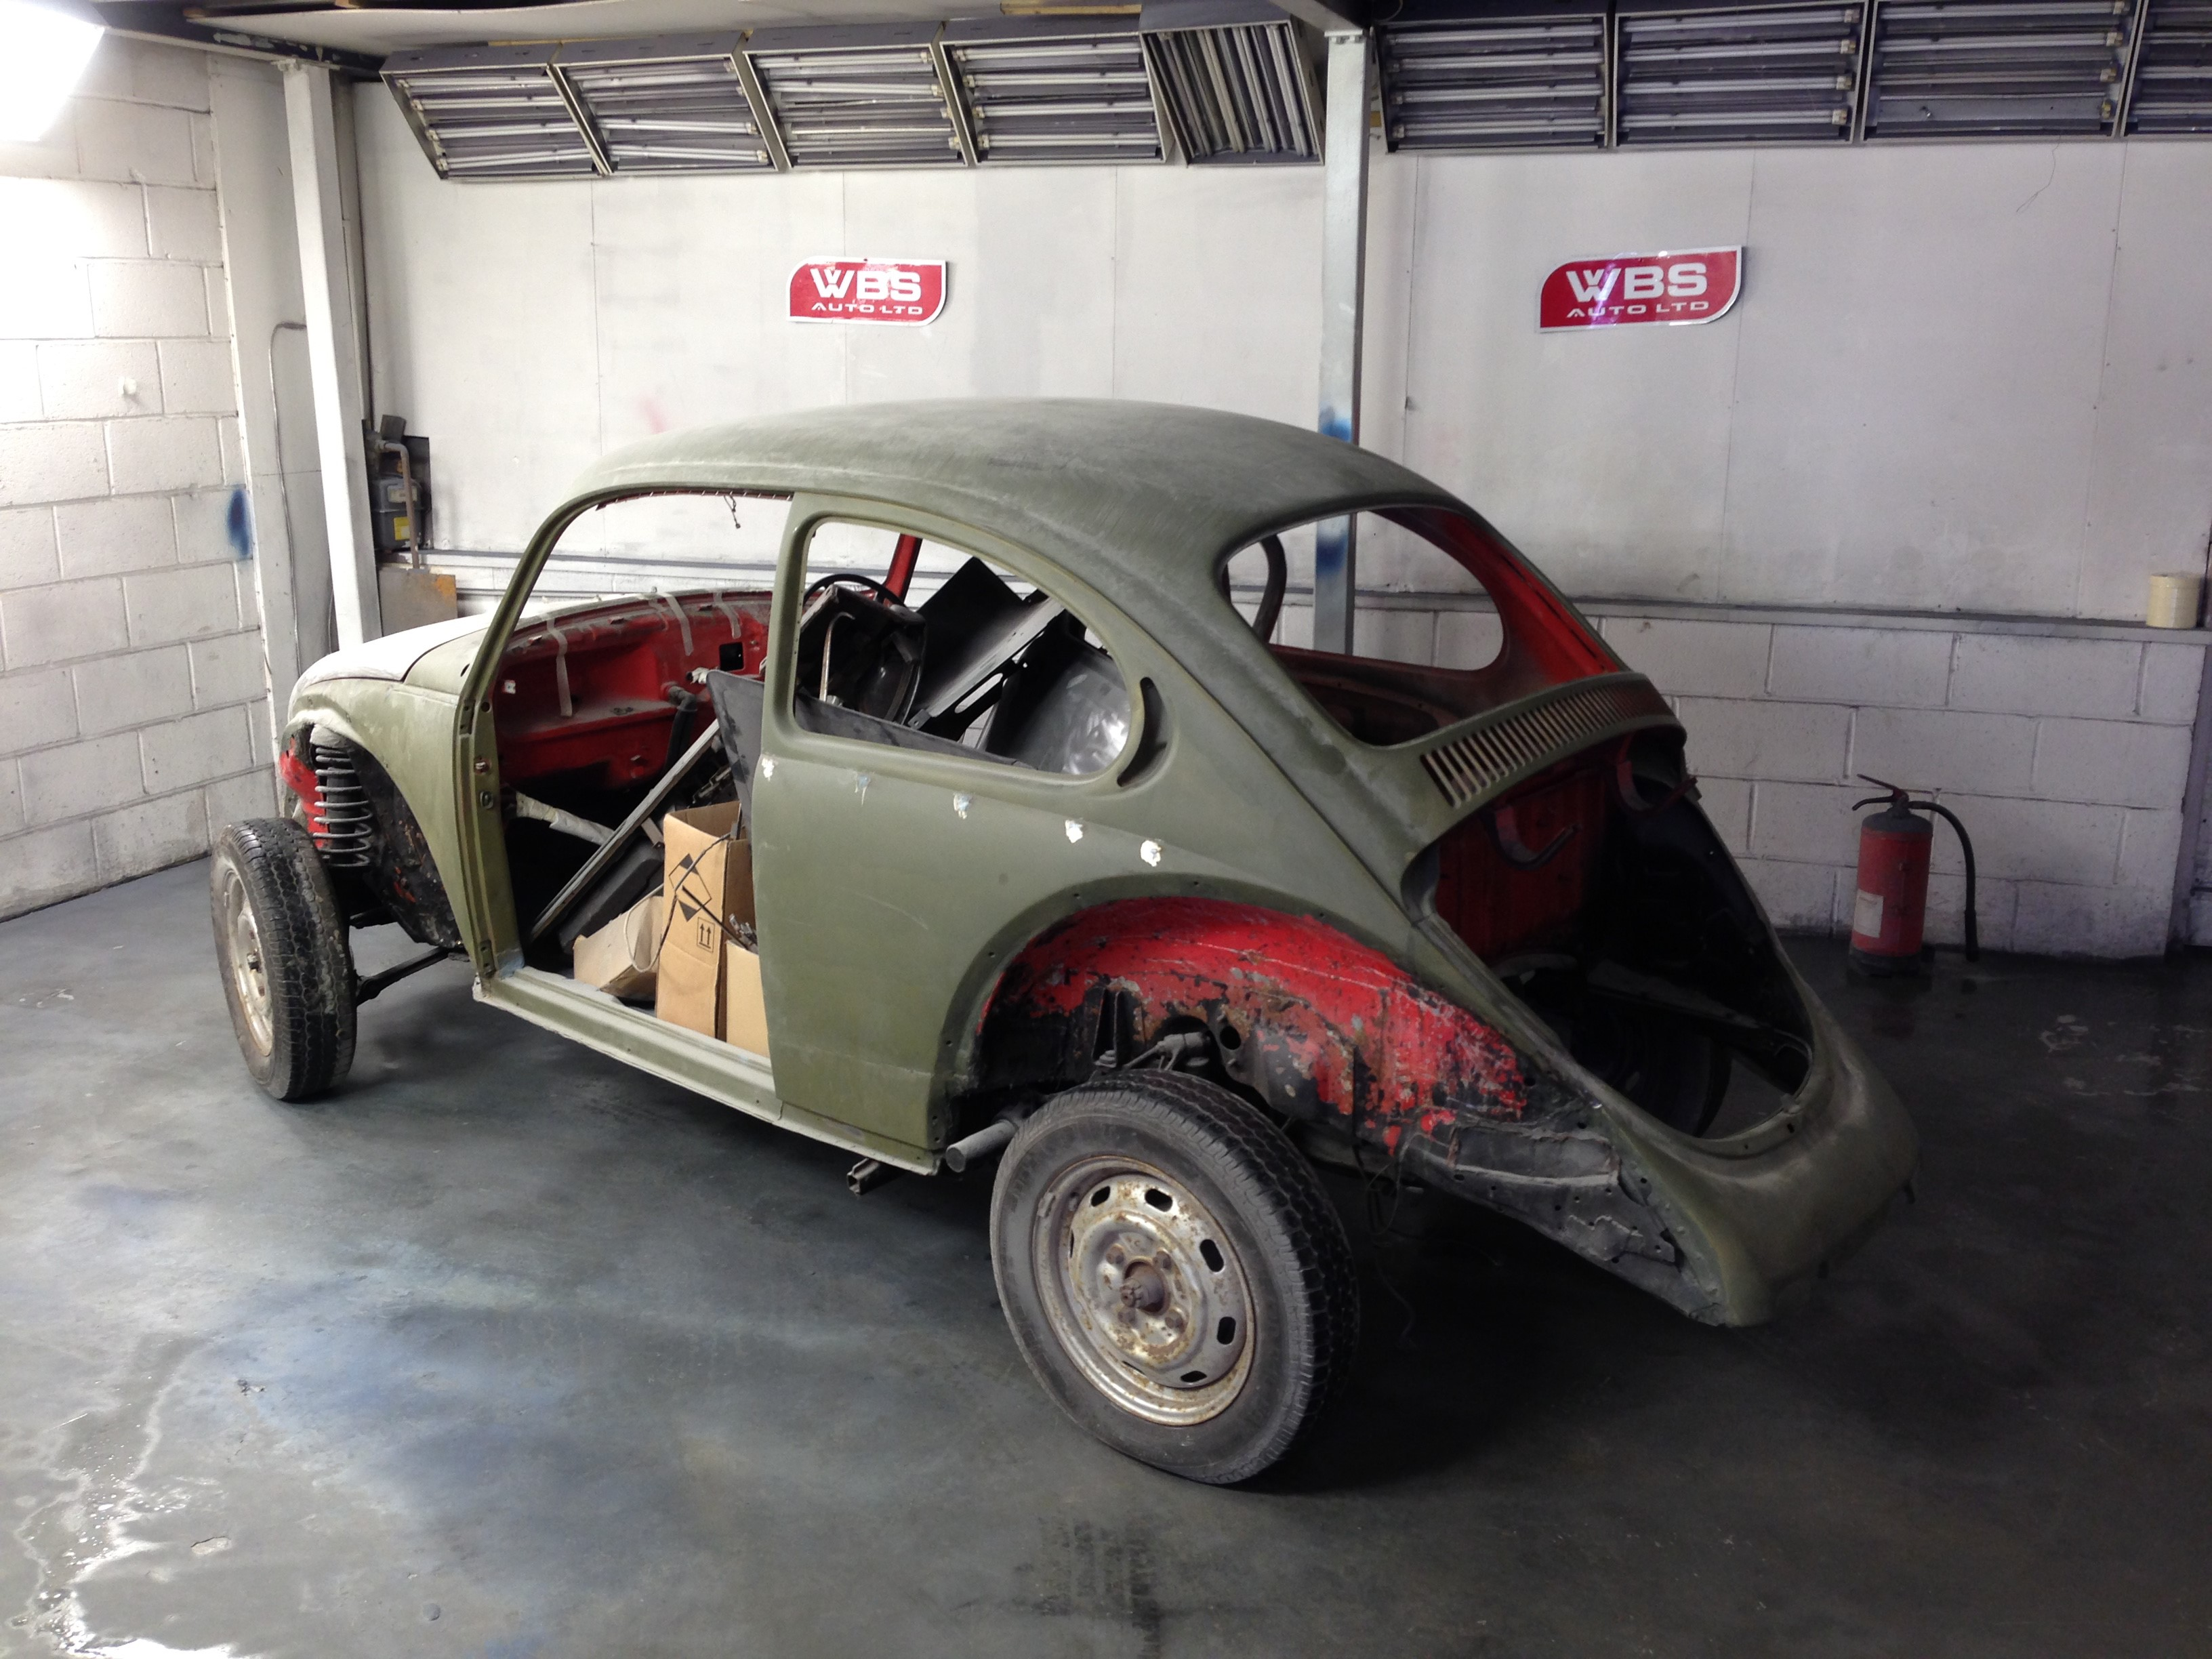 Kelvin Price Won 1 500 Worth Of Parts For His 1973 Vw Beetle 1303 3 Gsf Car Parts